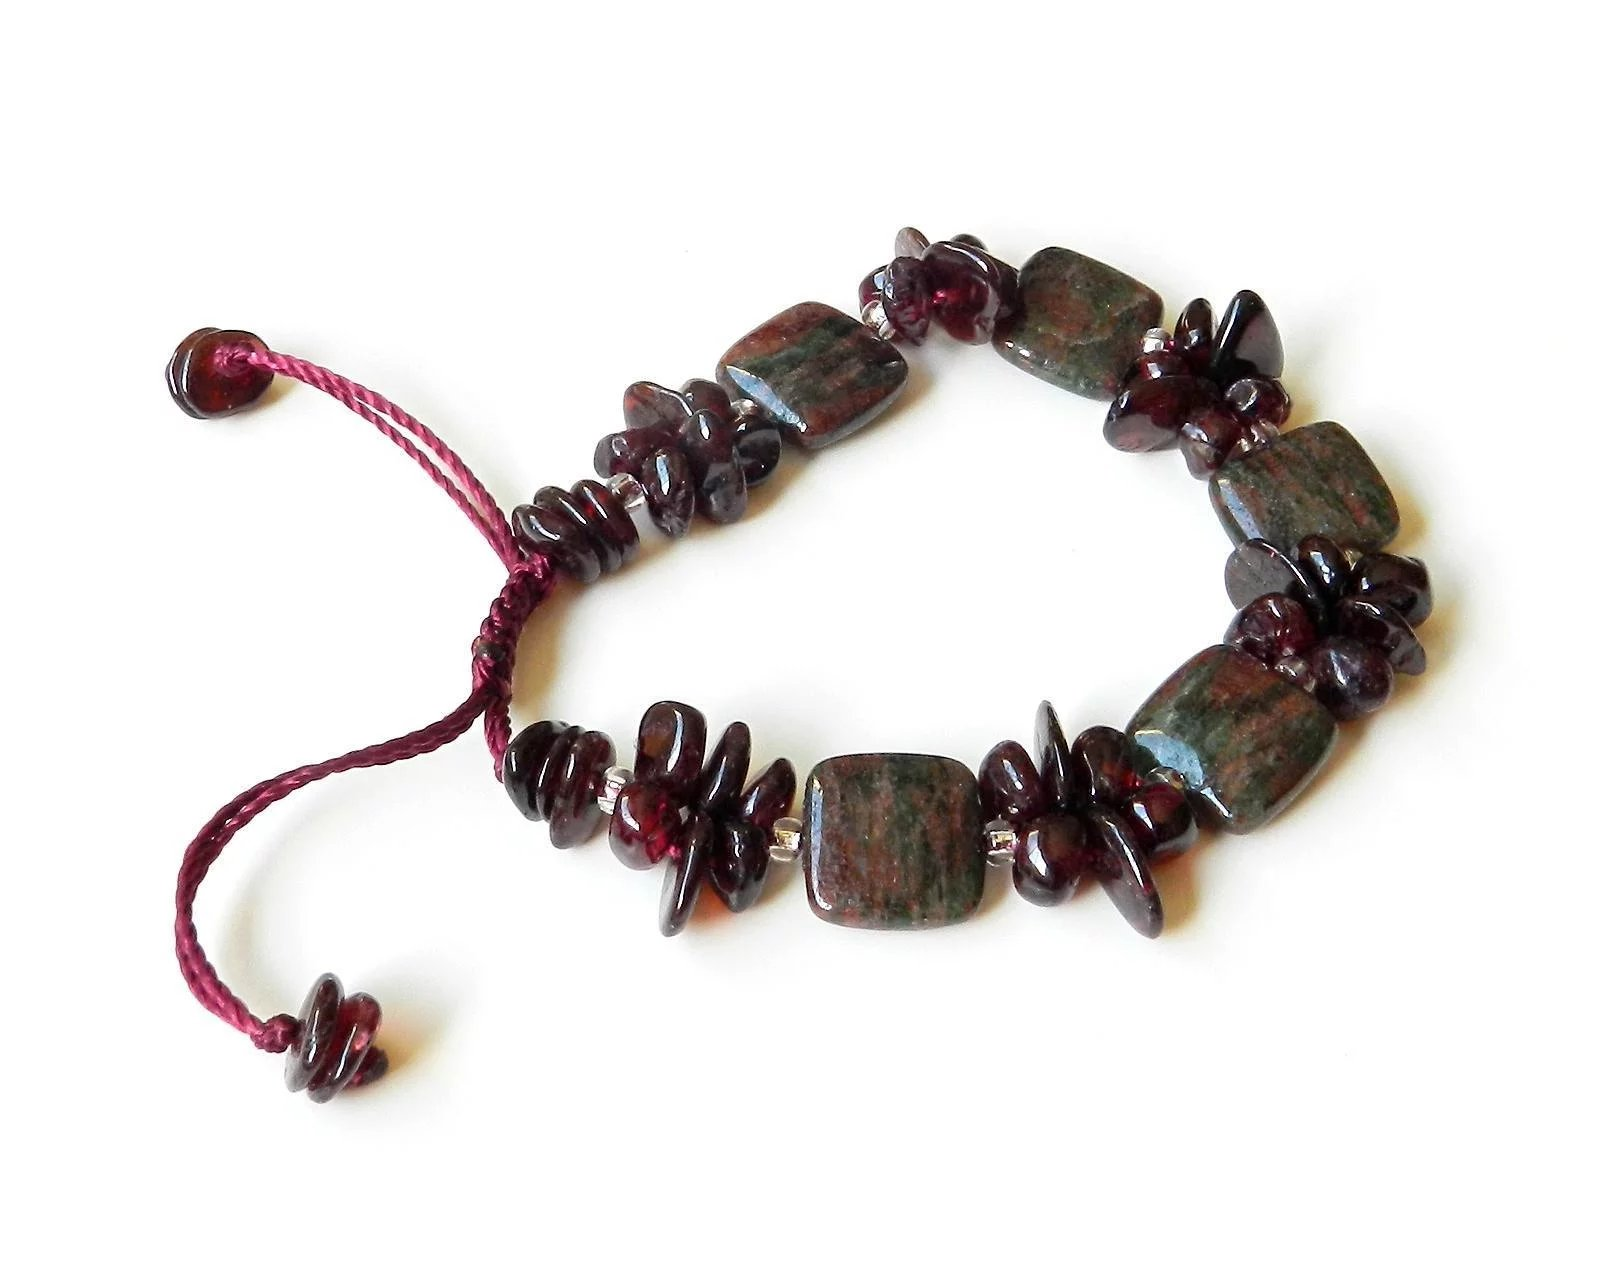 xpress flat bead collection annie products collections gemstones dark gemstone stone bracelet zodiac jasper red garnet